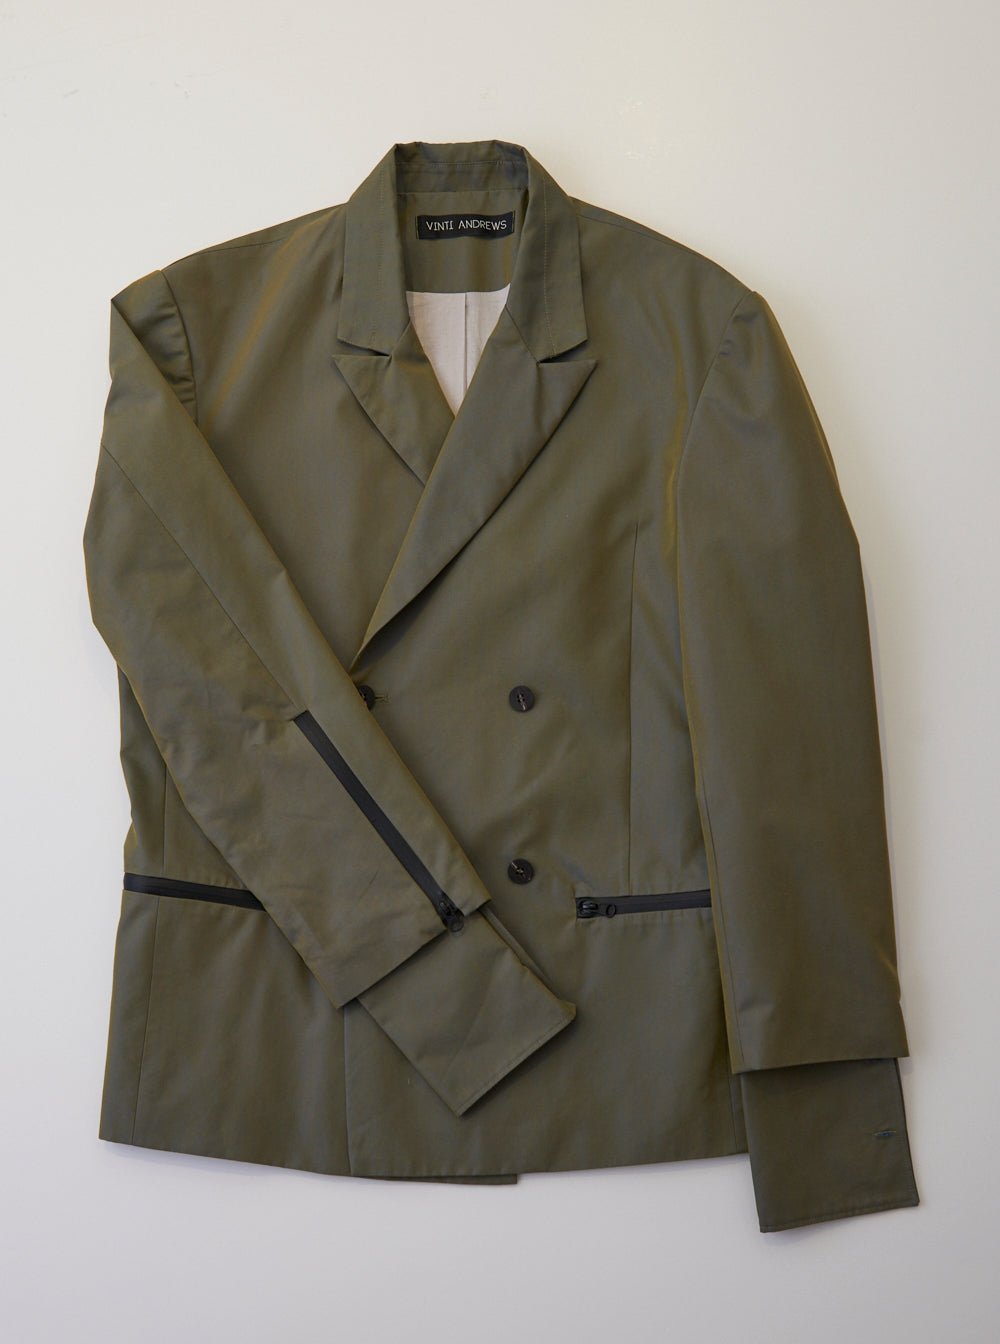 Vinti Andrews Tailor Jacket Khaki